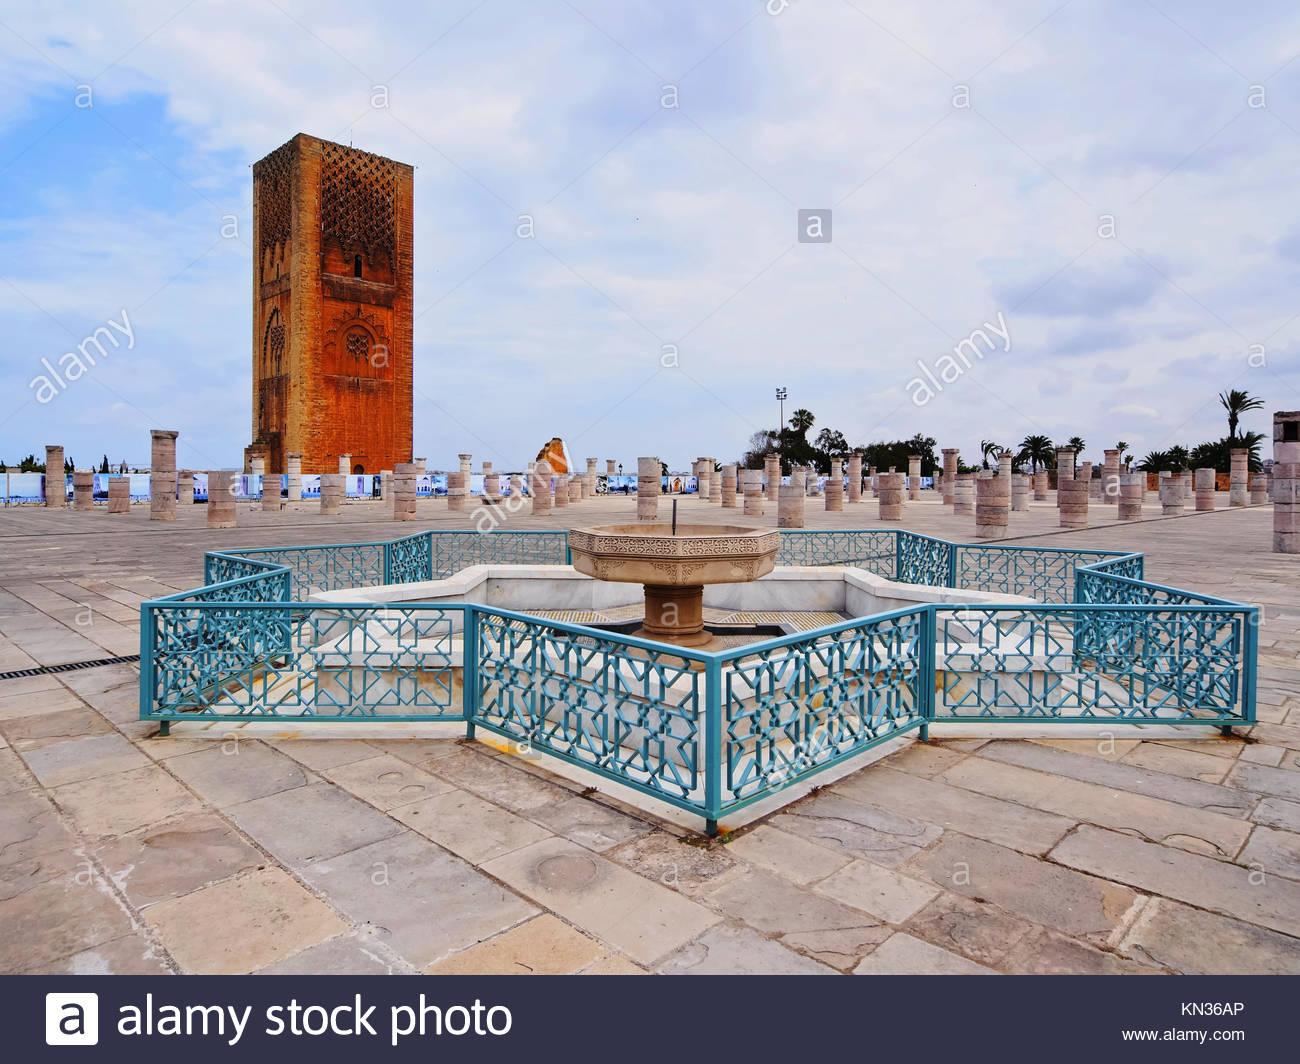 Hassan Tower - minaret of an incomplete mosque in Rabat, Morocco, Africa. - Stock Image